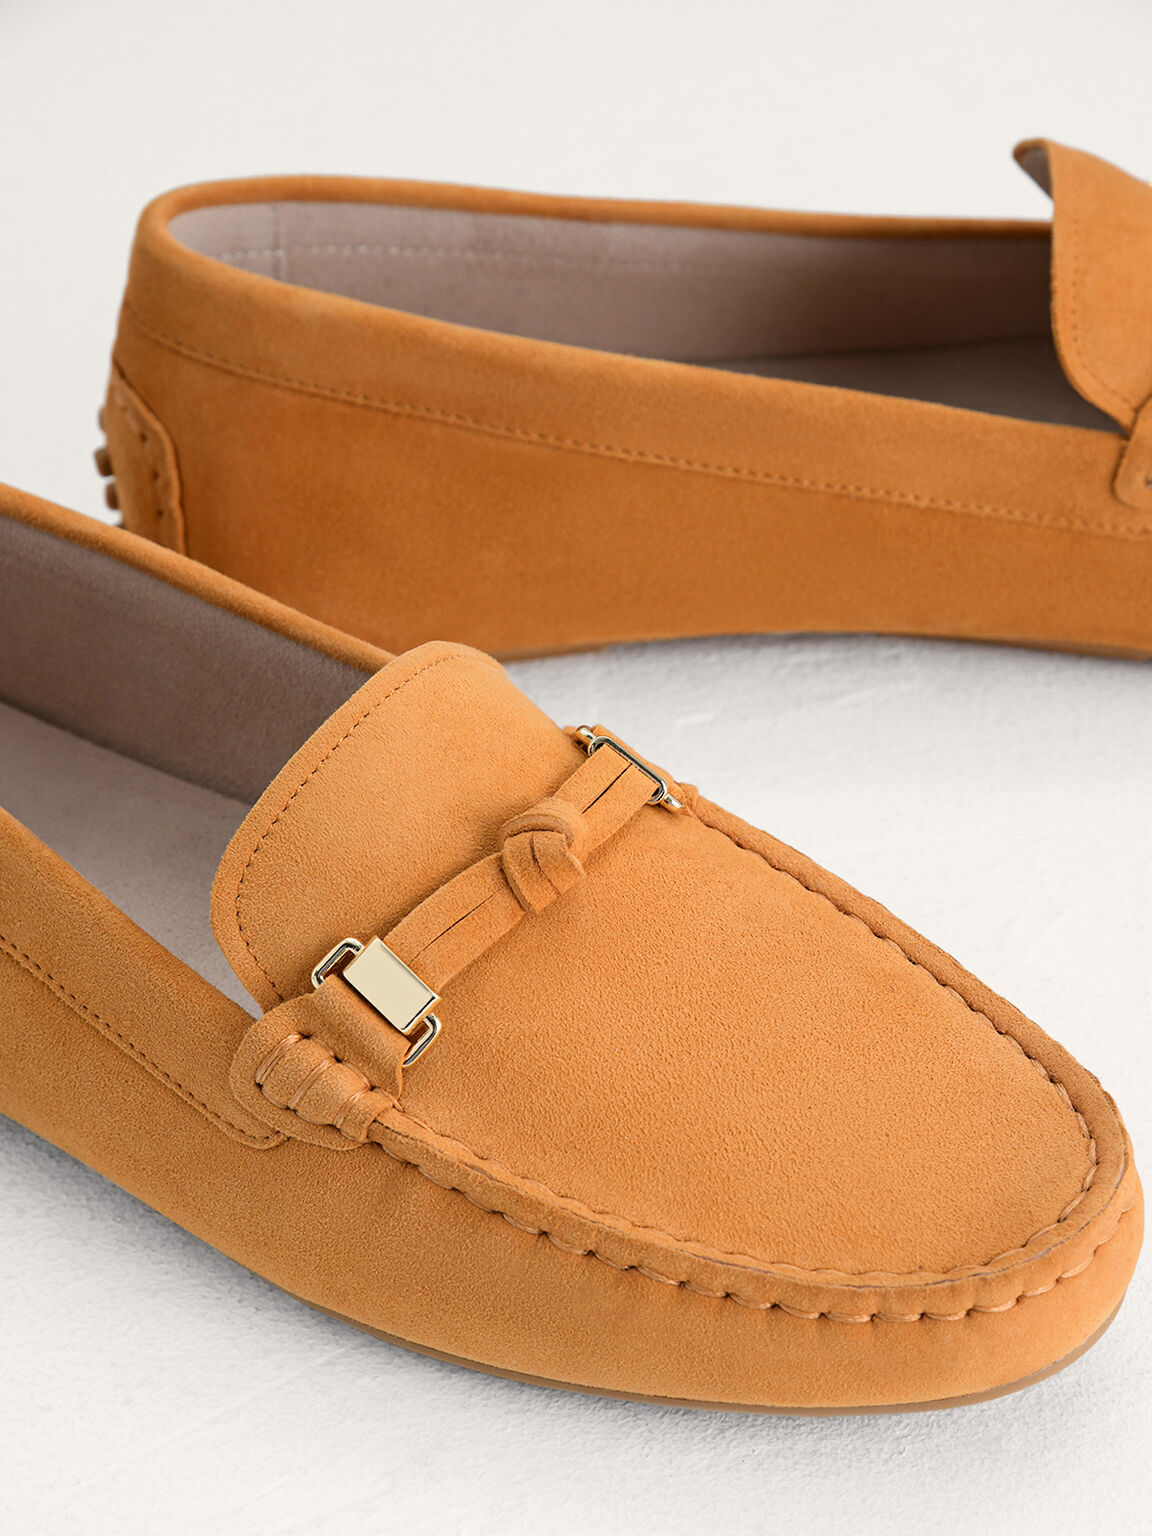 Knotted Suede Leather Moccasins, Mustard, hi-res